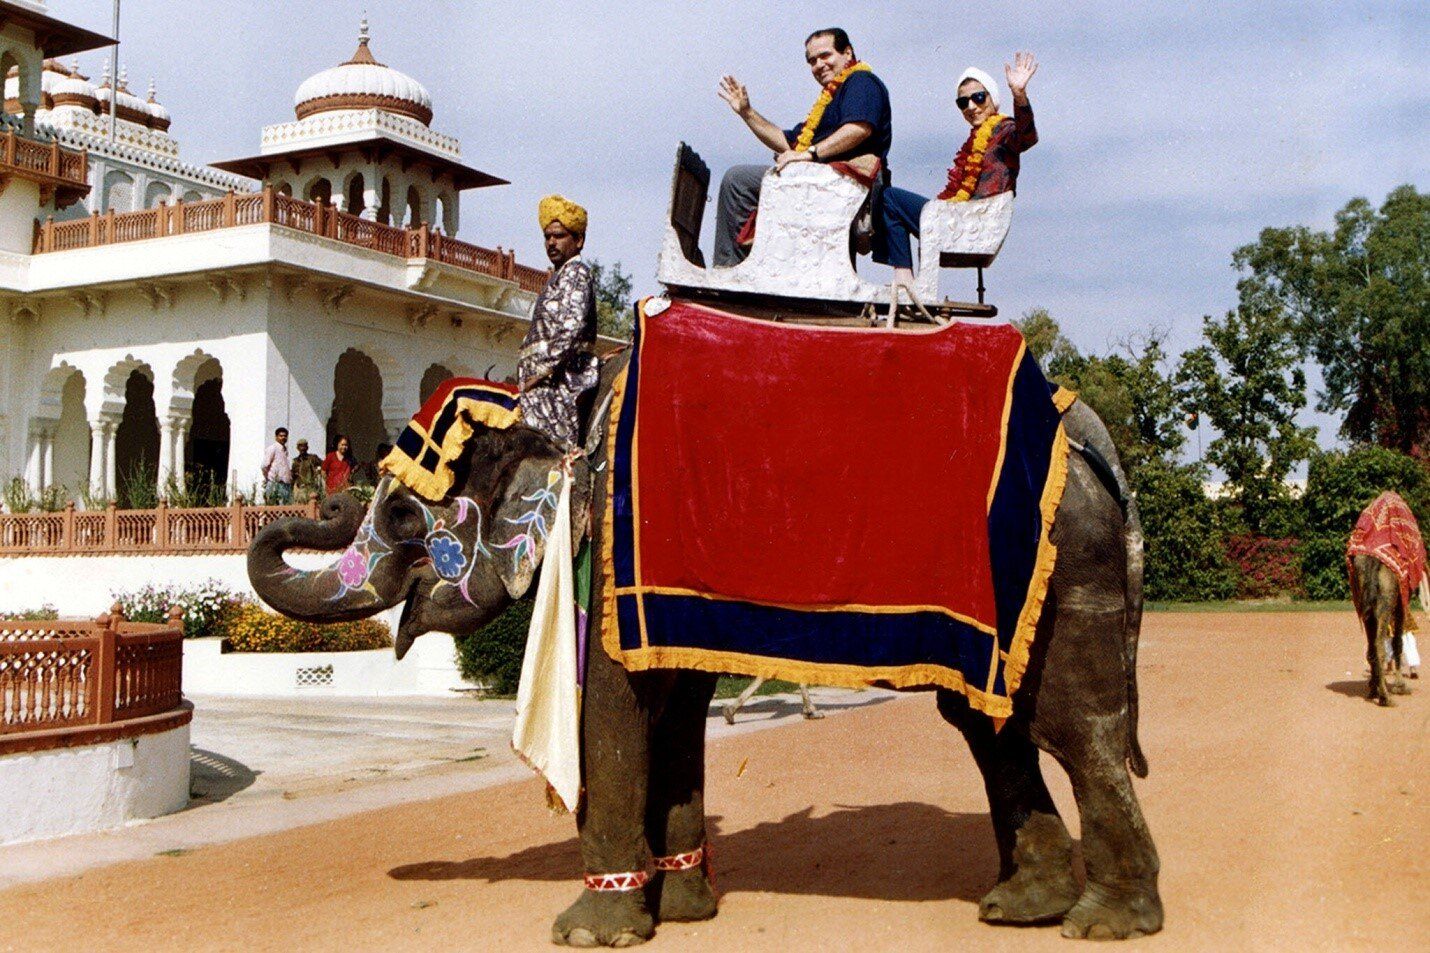 Ruth Bader Ginsburg and Antonin Scalia in Rajasthan, India, in 1994. Credit Collection of the Supreme Court of the United States, via Associated Press.